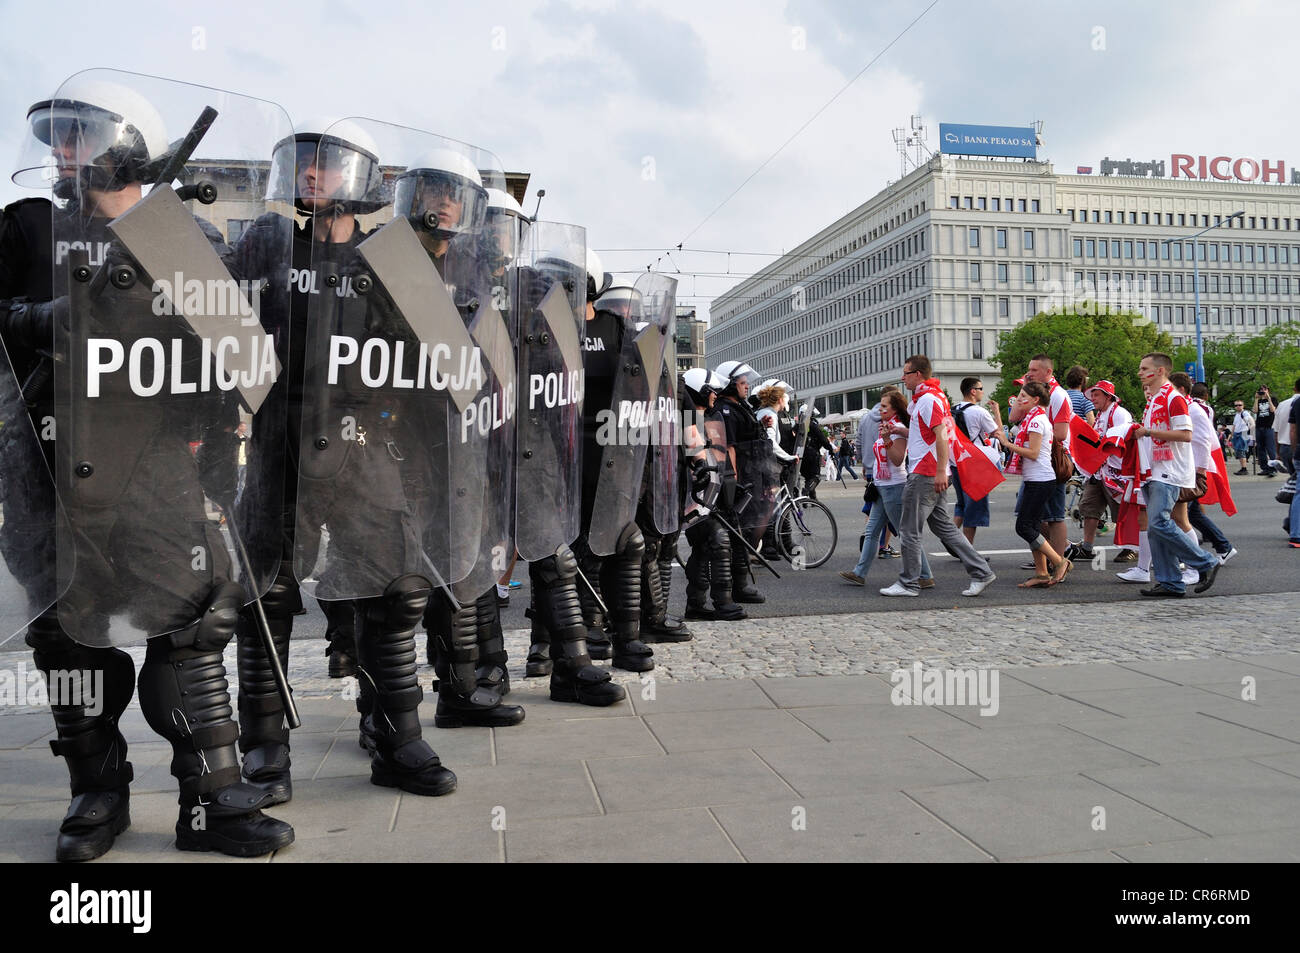 Riot Police at Euro 2012 - Stock Image